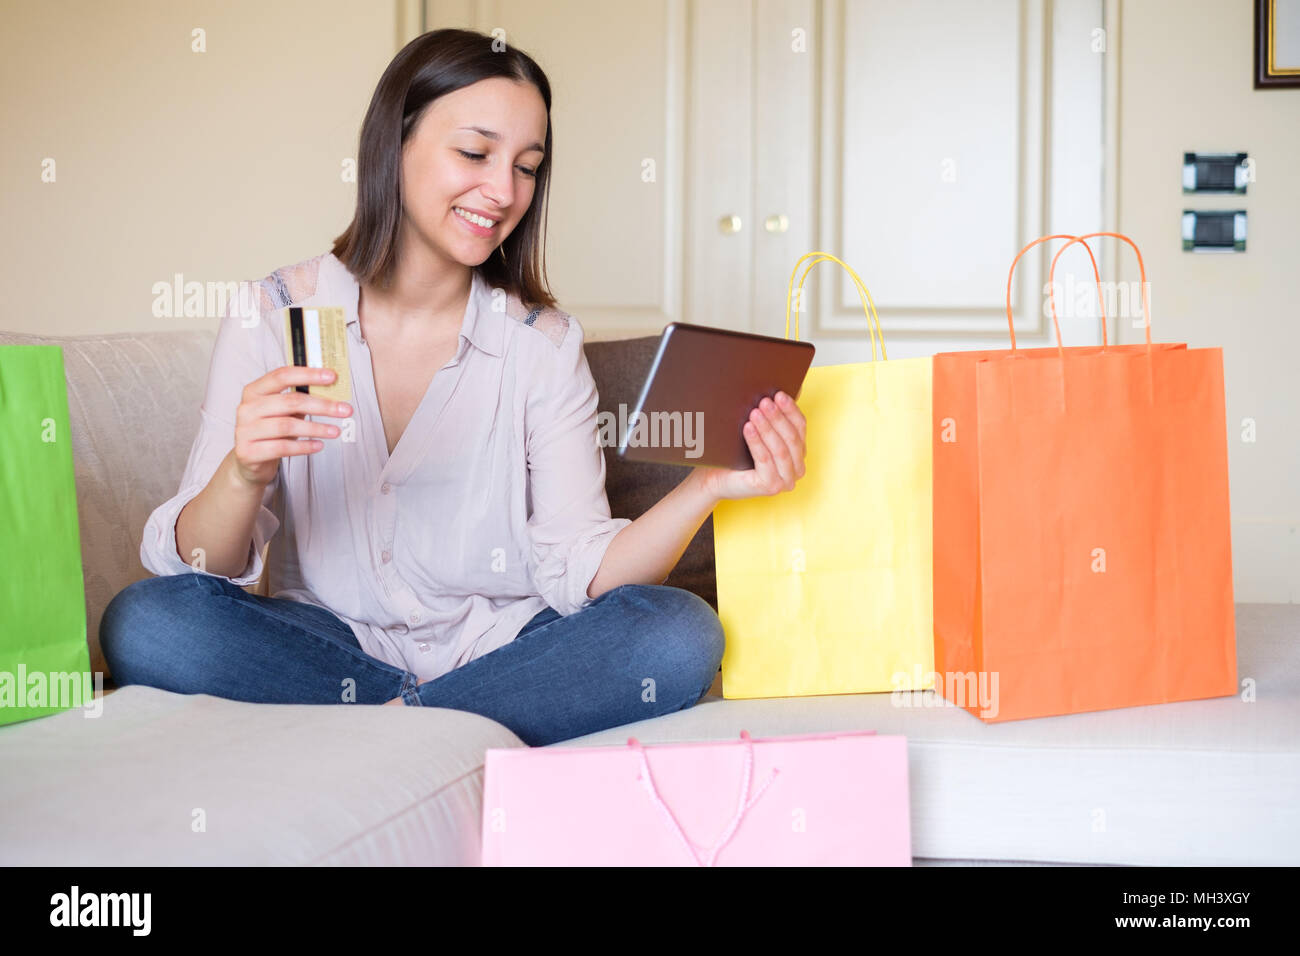 Happy young woman ordering and paying using credit card on online store - Stock Image